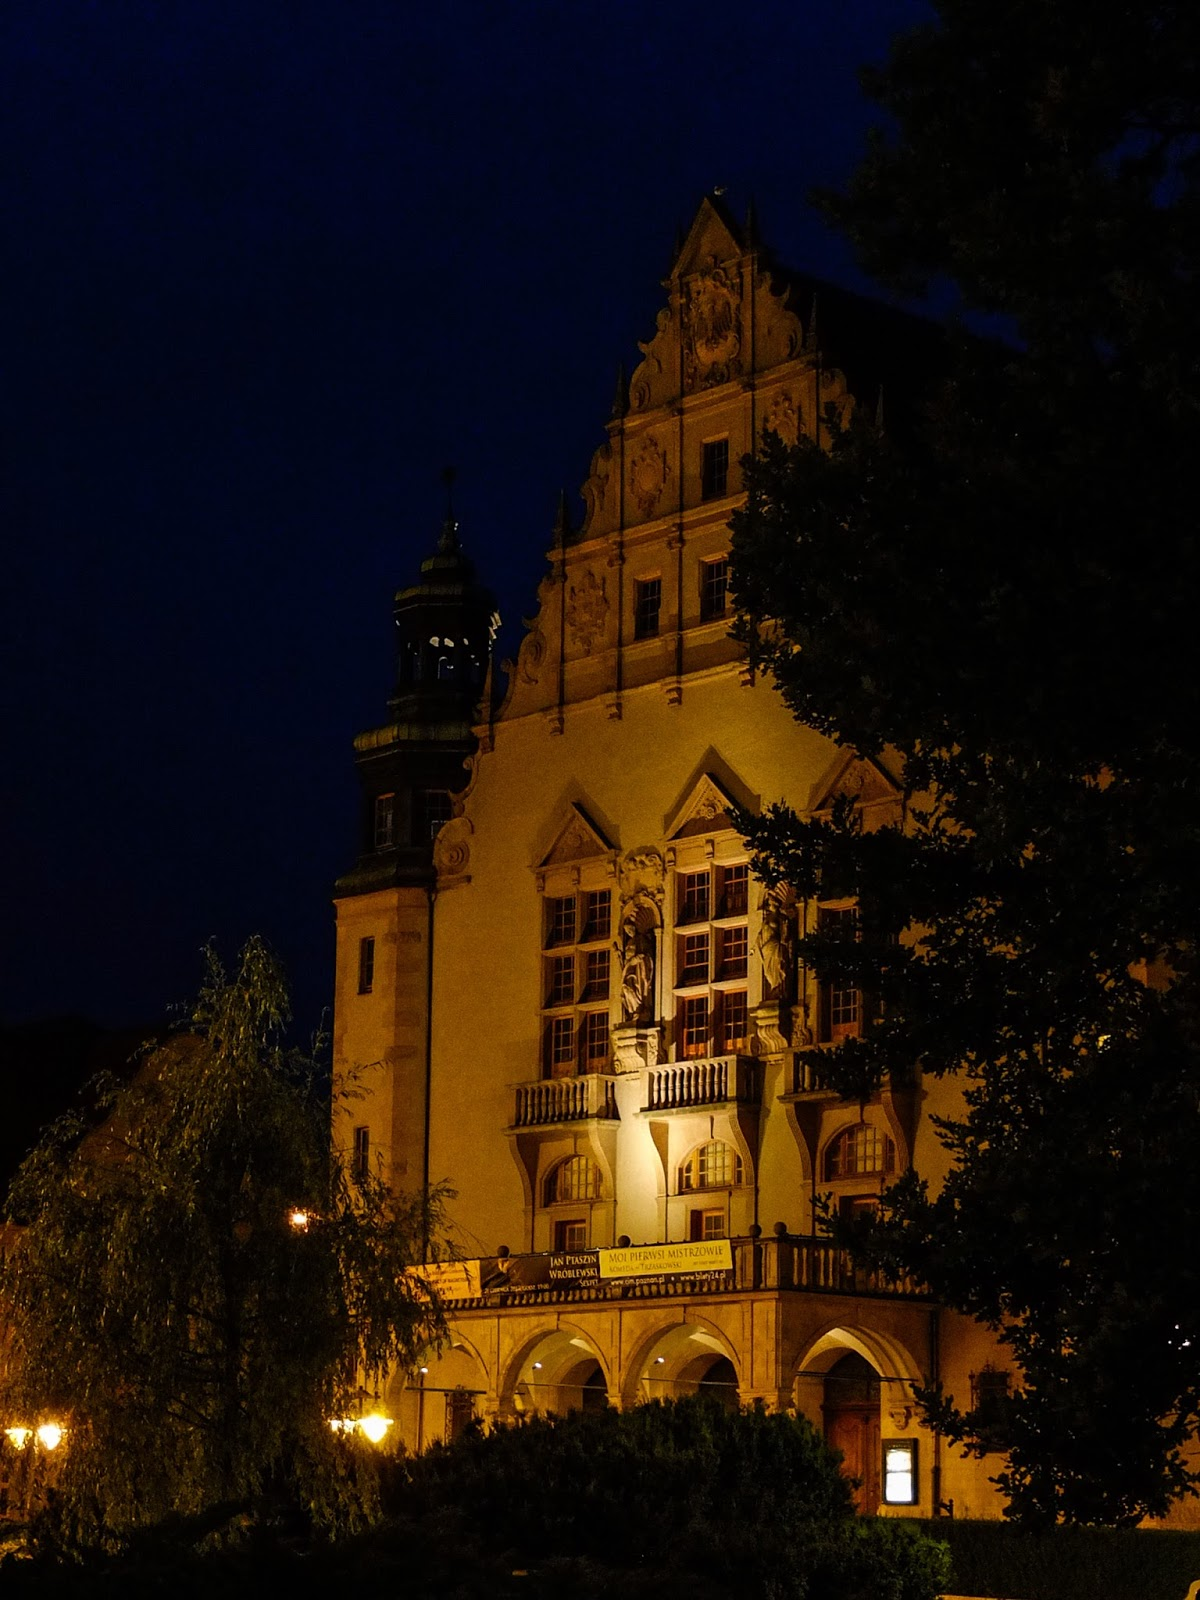 A view of the Adam Mickiewicz University in Poznań, Poland from the Mickiewicz Park at night.